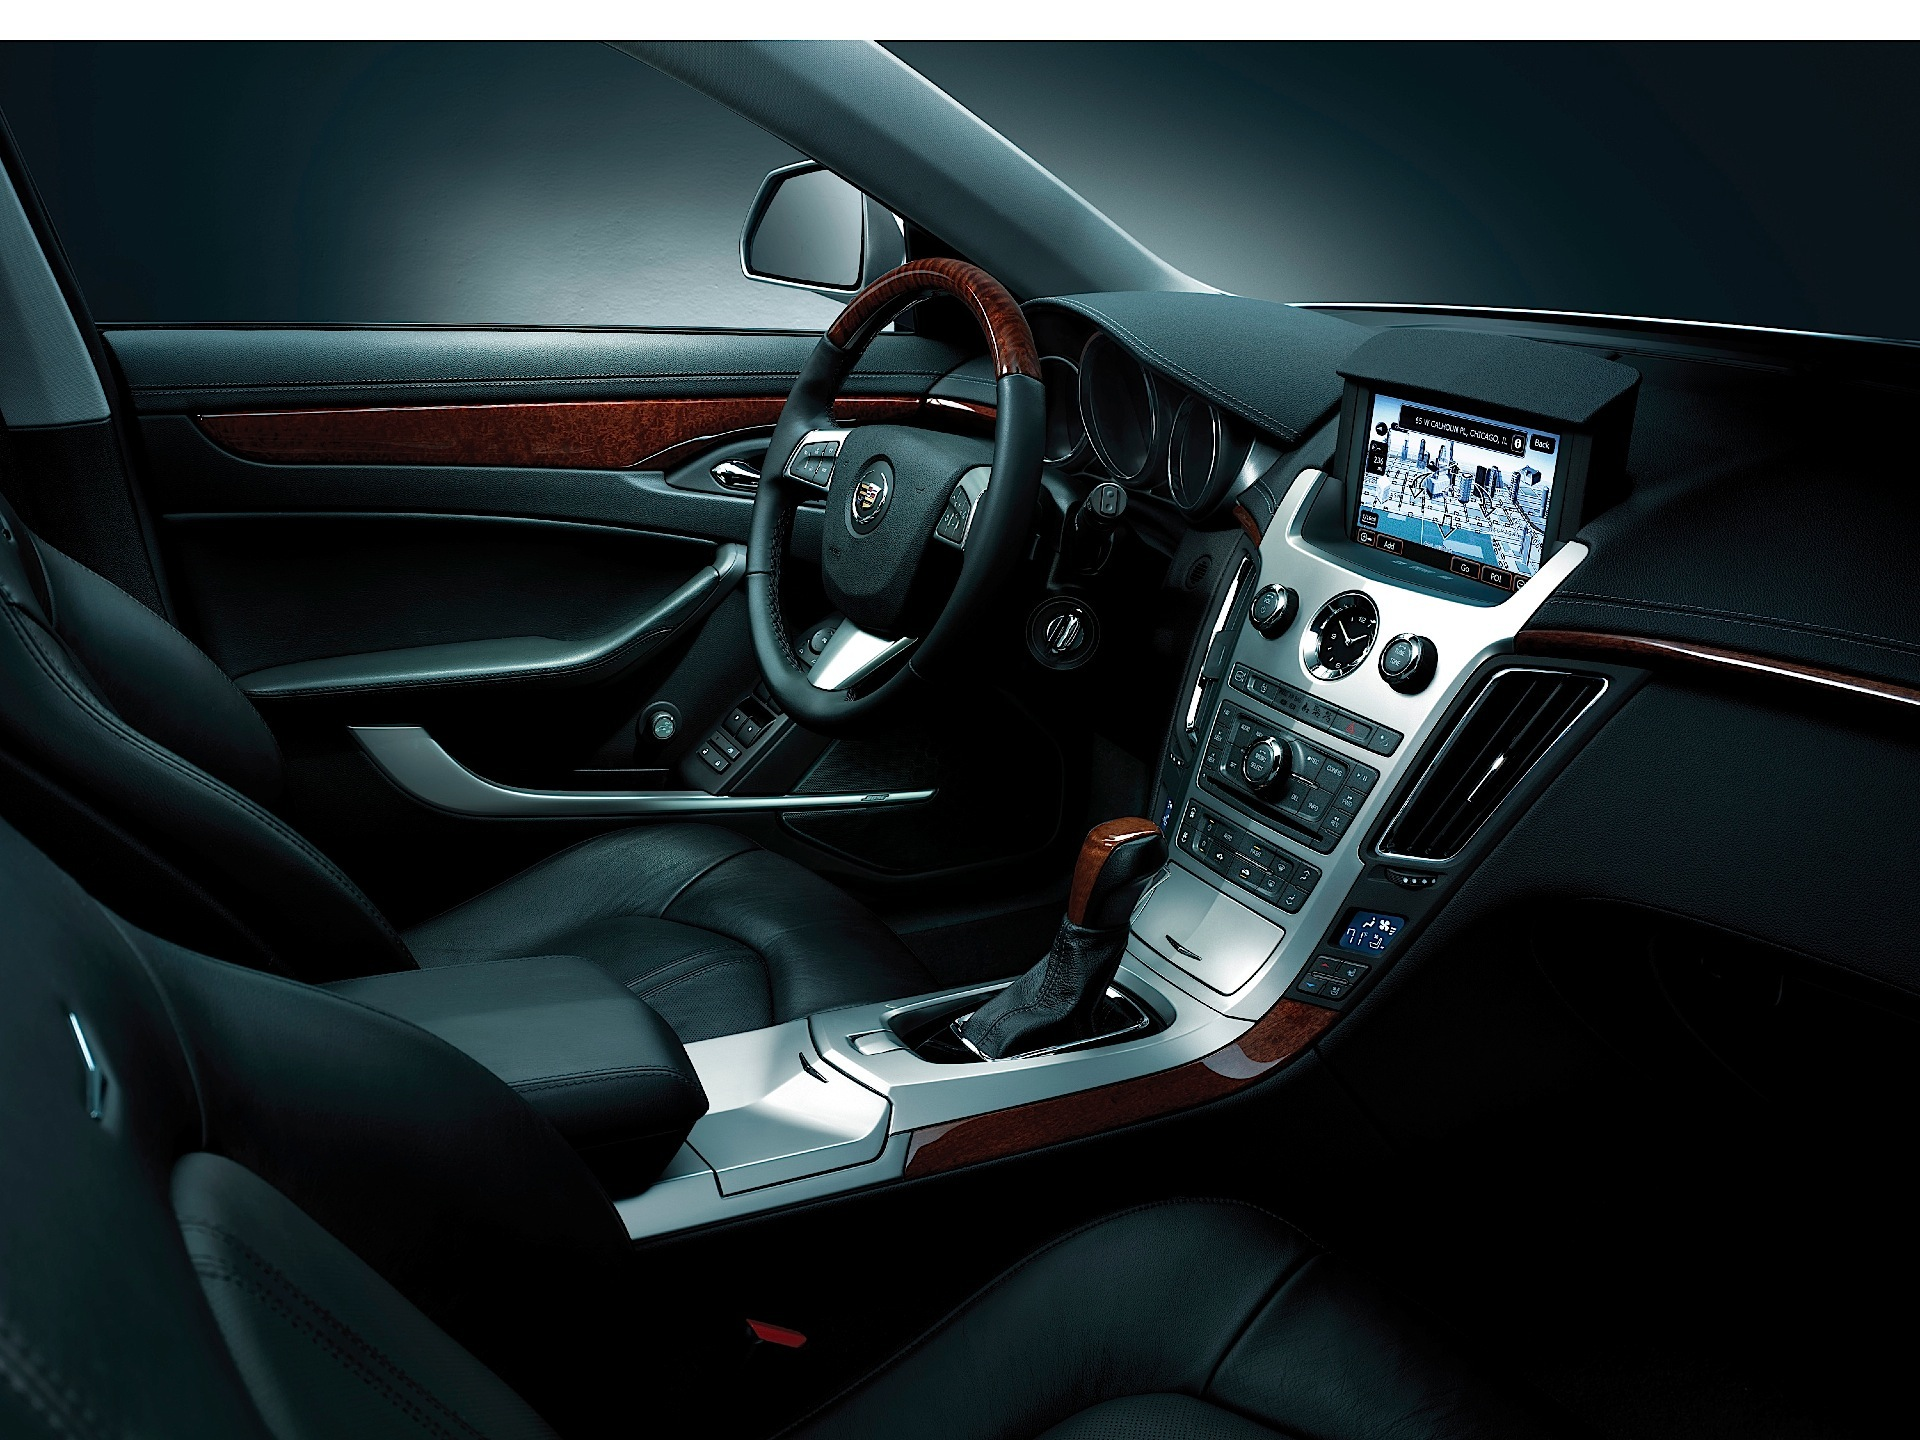 Cadillac Cts Coupe Specs Photos 2011 2012 2013 2014 2015. Cadillac Cts Coupe 2011 Present. Cadillac. 2014 Cadillac Cts Schematic At Scoala.co